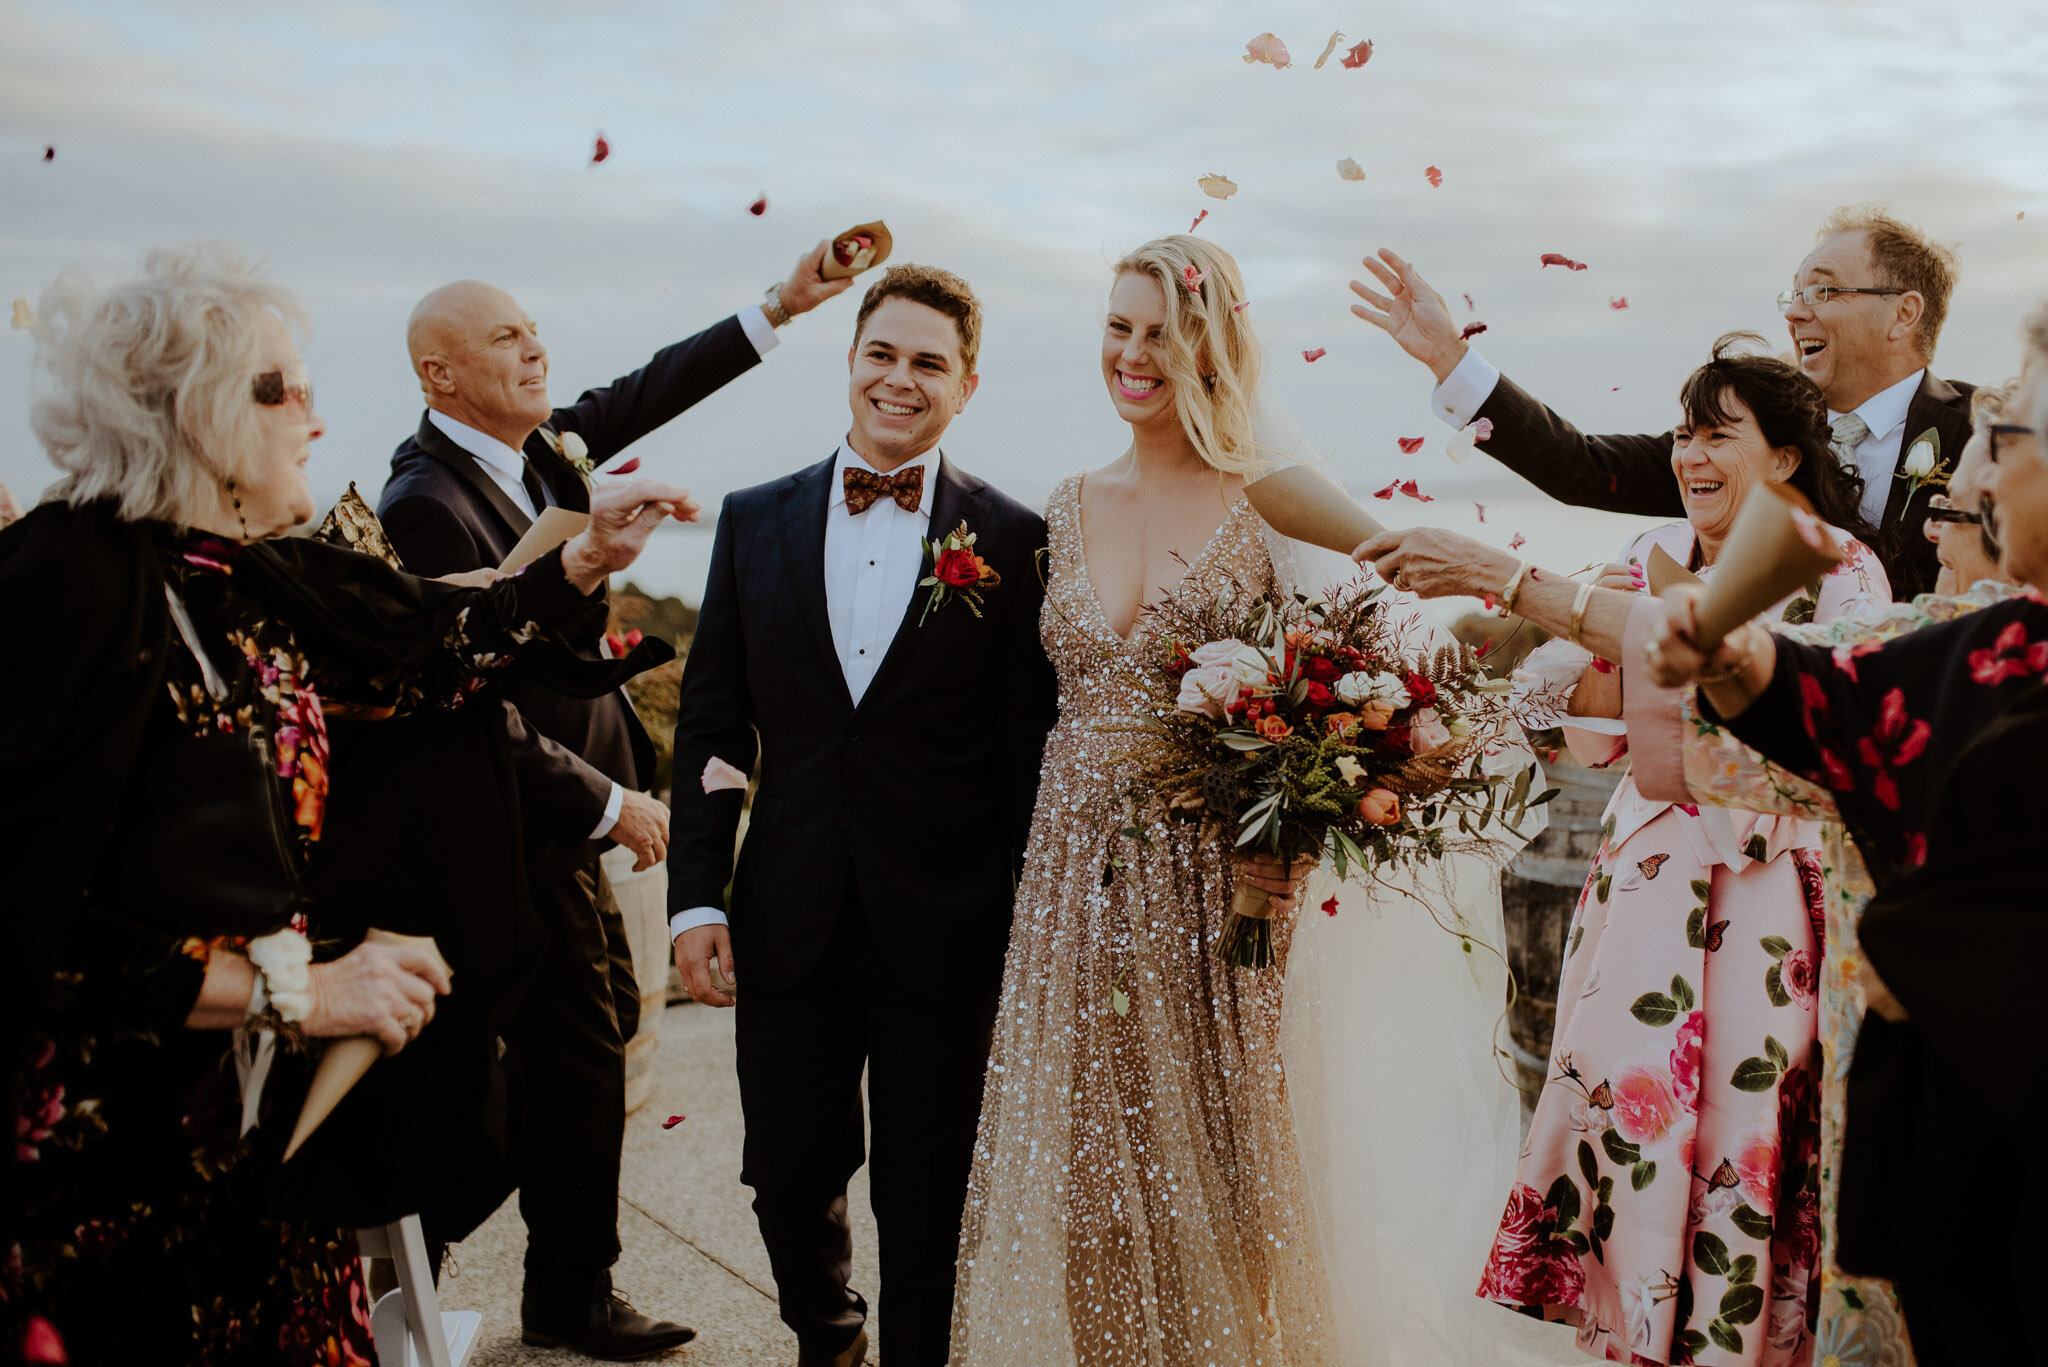 Mudbrick rose petal confetti ceremony at sunset